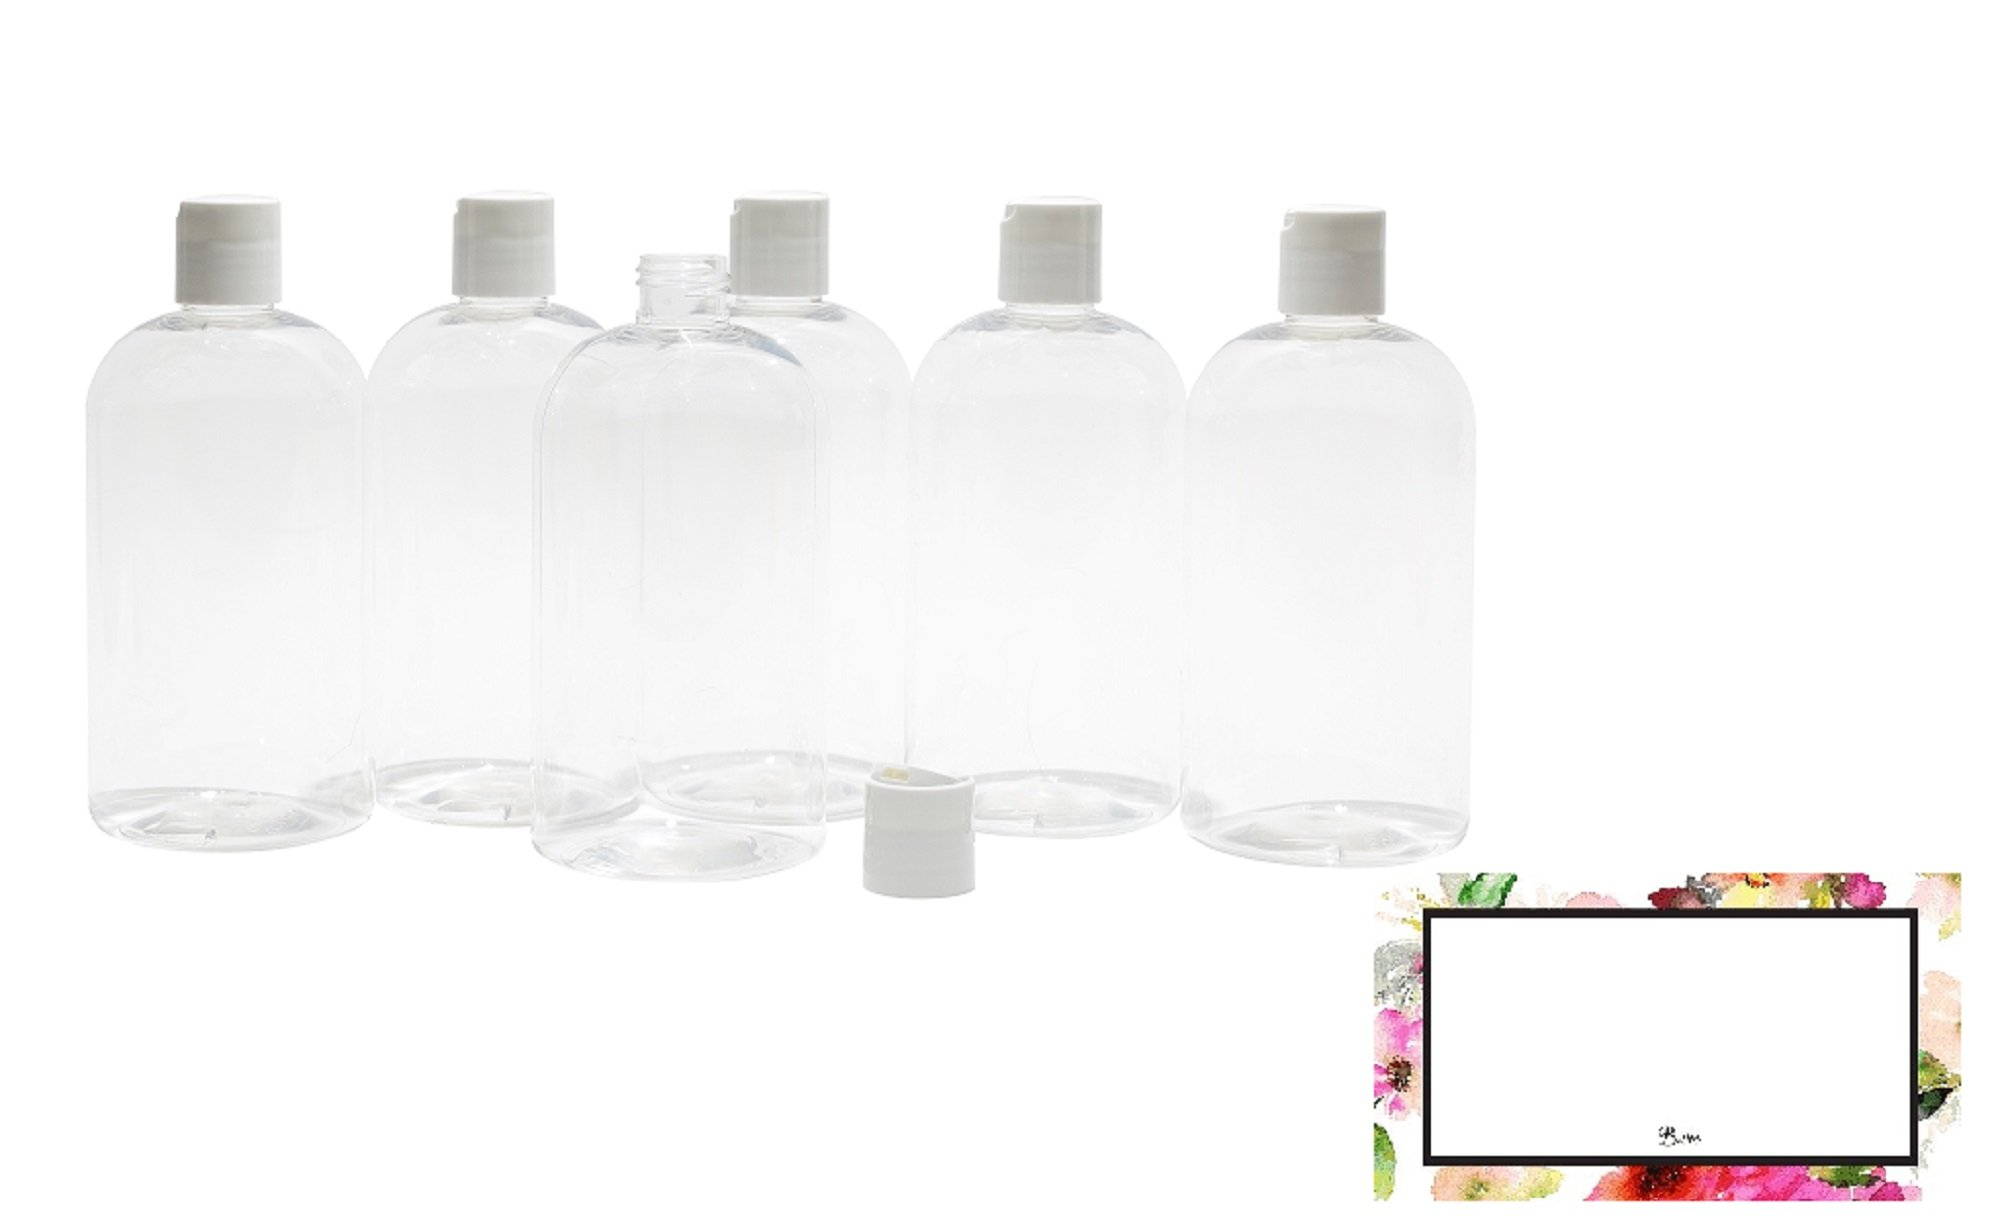 BAIRE BOTTLES - 4 oz CLEAR PLASTIC REFILLABLE BOTTLES with WHITE HAND-PRESS FLIP DISC CAPS - For TRAVEL OR GIFTING Soap, Shampoo or Lotion - PET, BPA Free, Lightweight, 6 Pack, BONUS 6 FLORAL LABELS